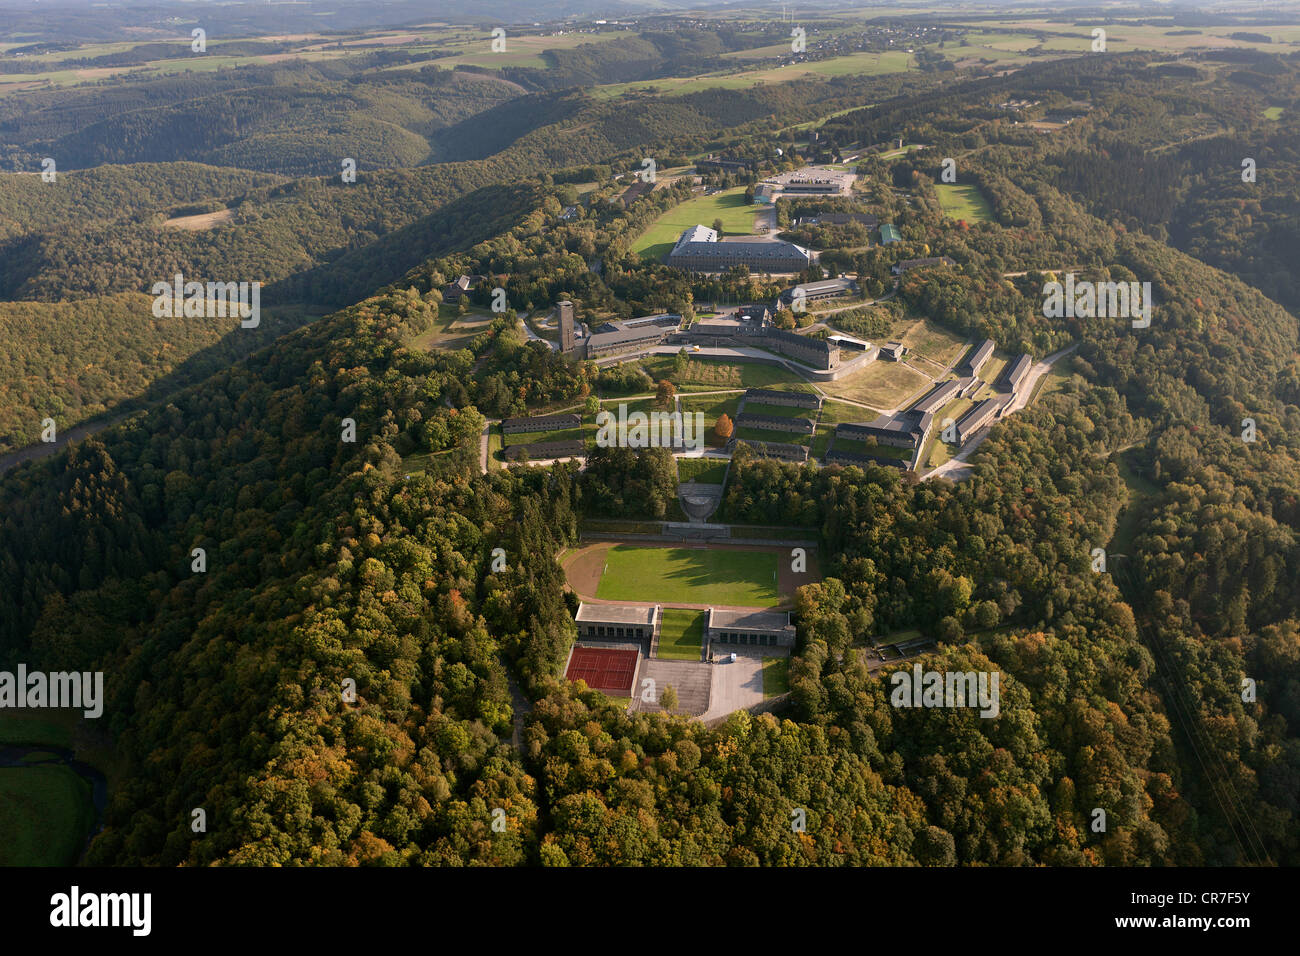 Aerial view ordensburg vogelsang a former national socialist estate stock photo 48723415 alamy - Euskirchen mobel ...